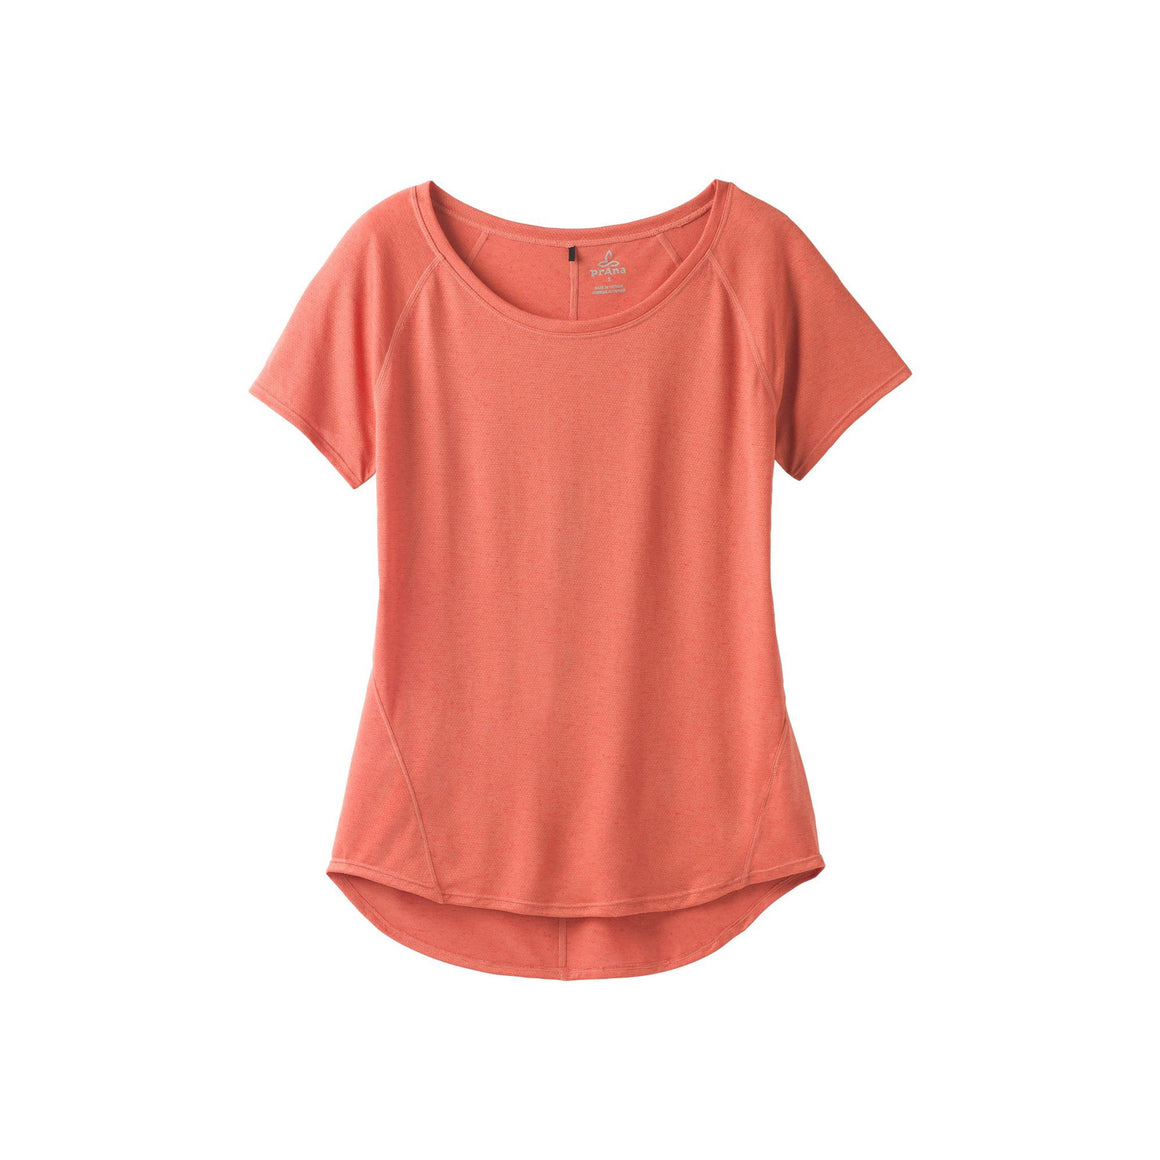 Prana Iselle Short Sleeve Tee - Women's